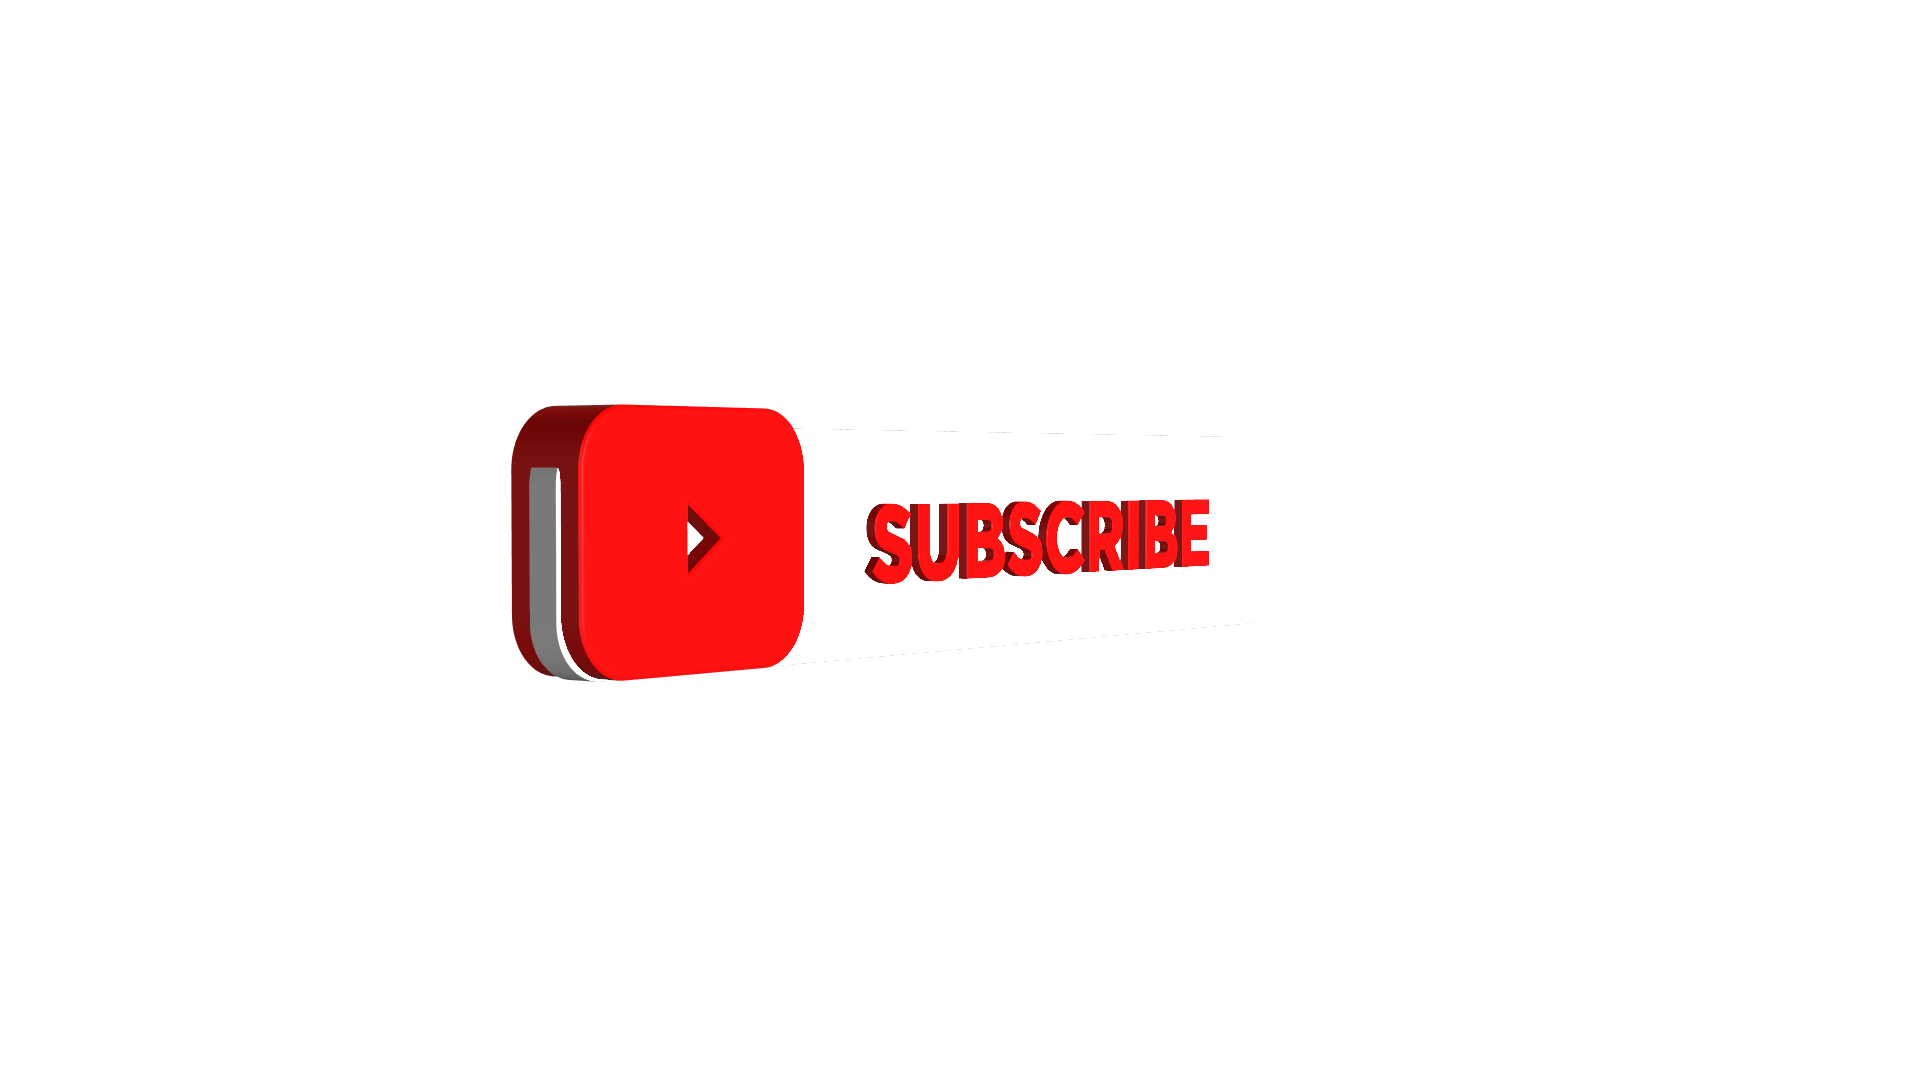 subscribe my youtube channel png